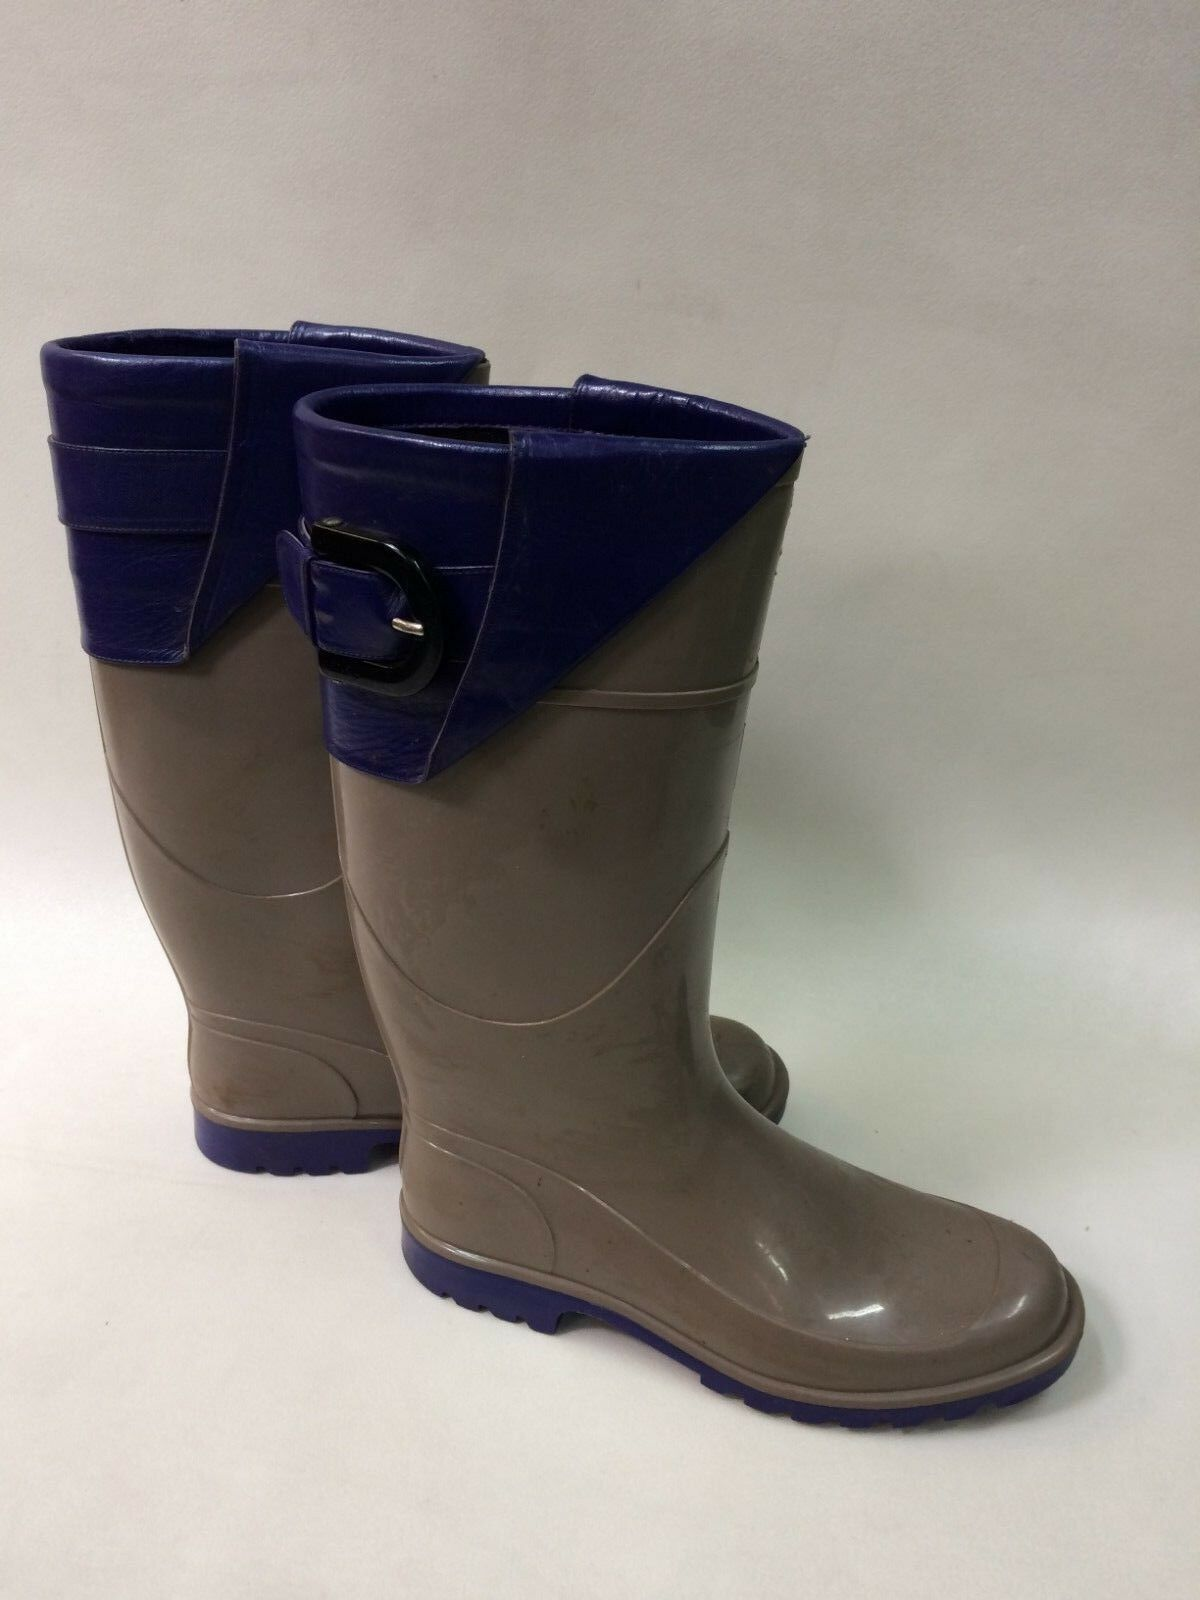 KENZO HOMME Wellies Wellington Made in Italy Taille 40 40 40 EU 9ad8f4